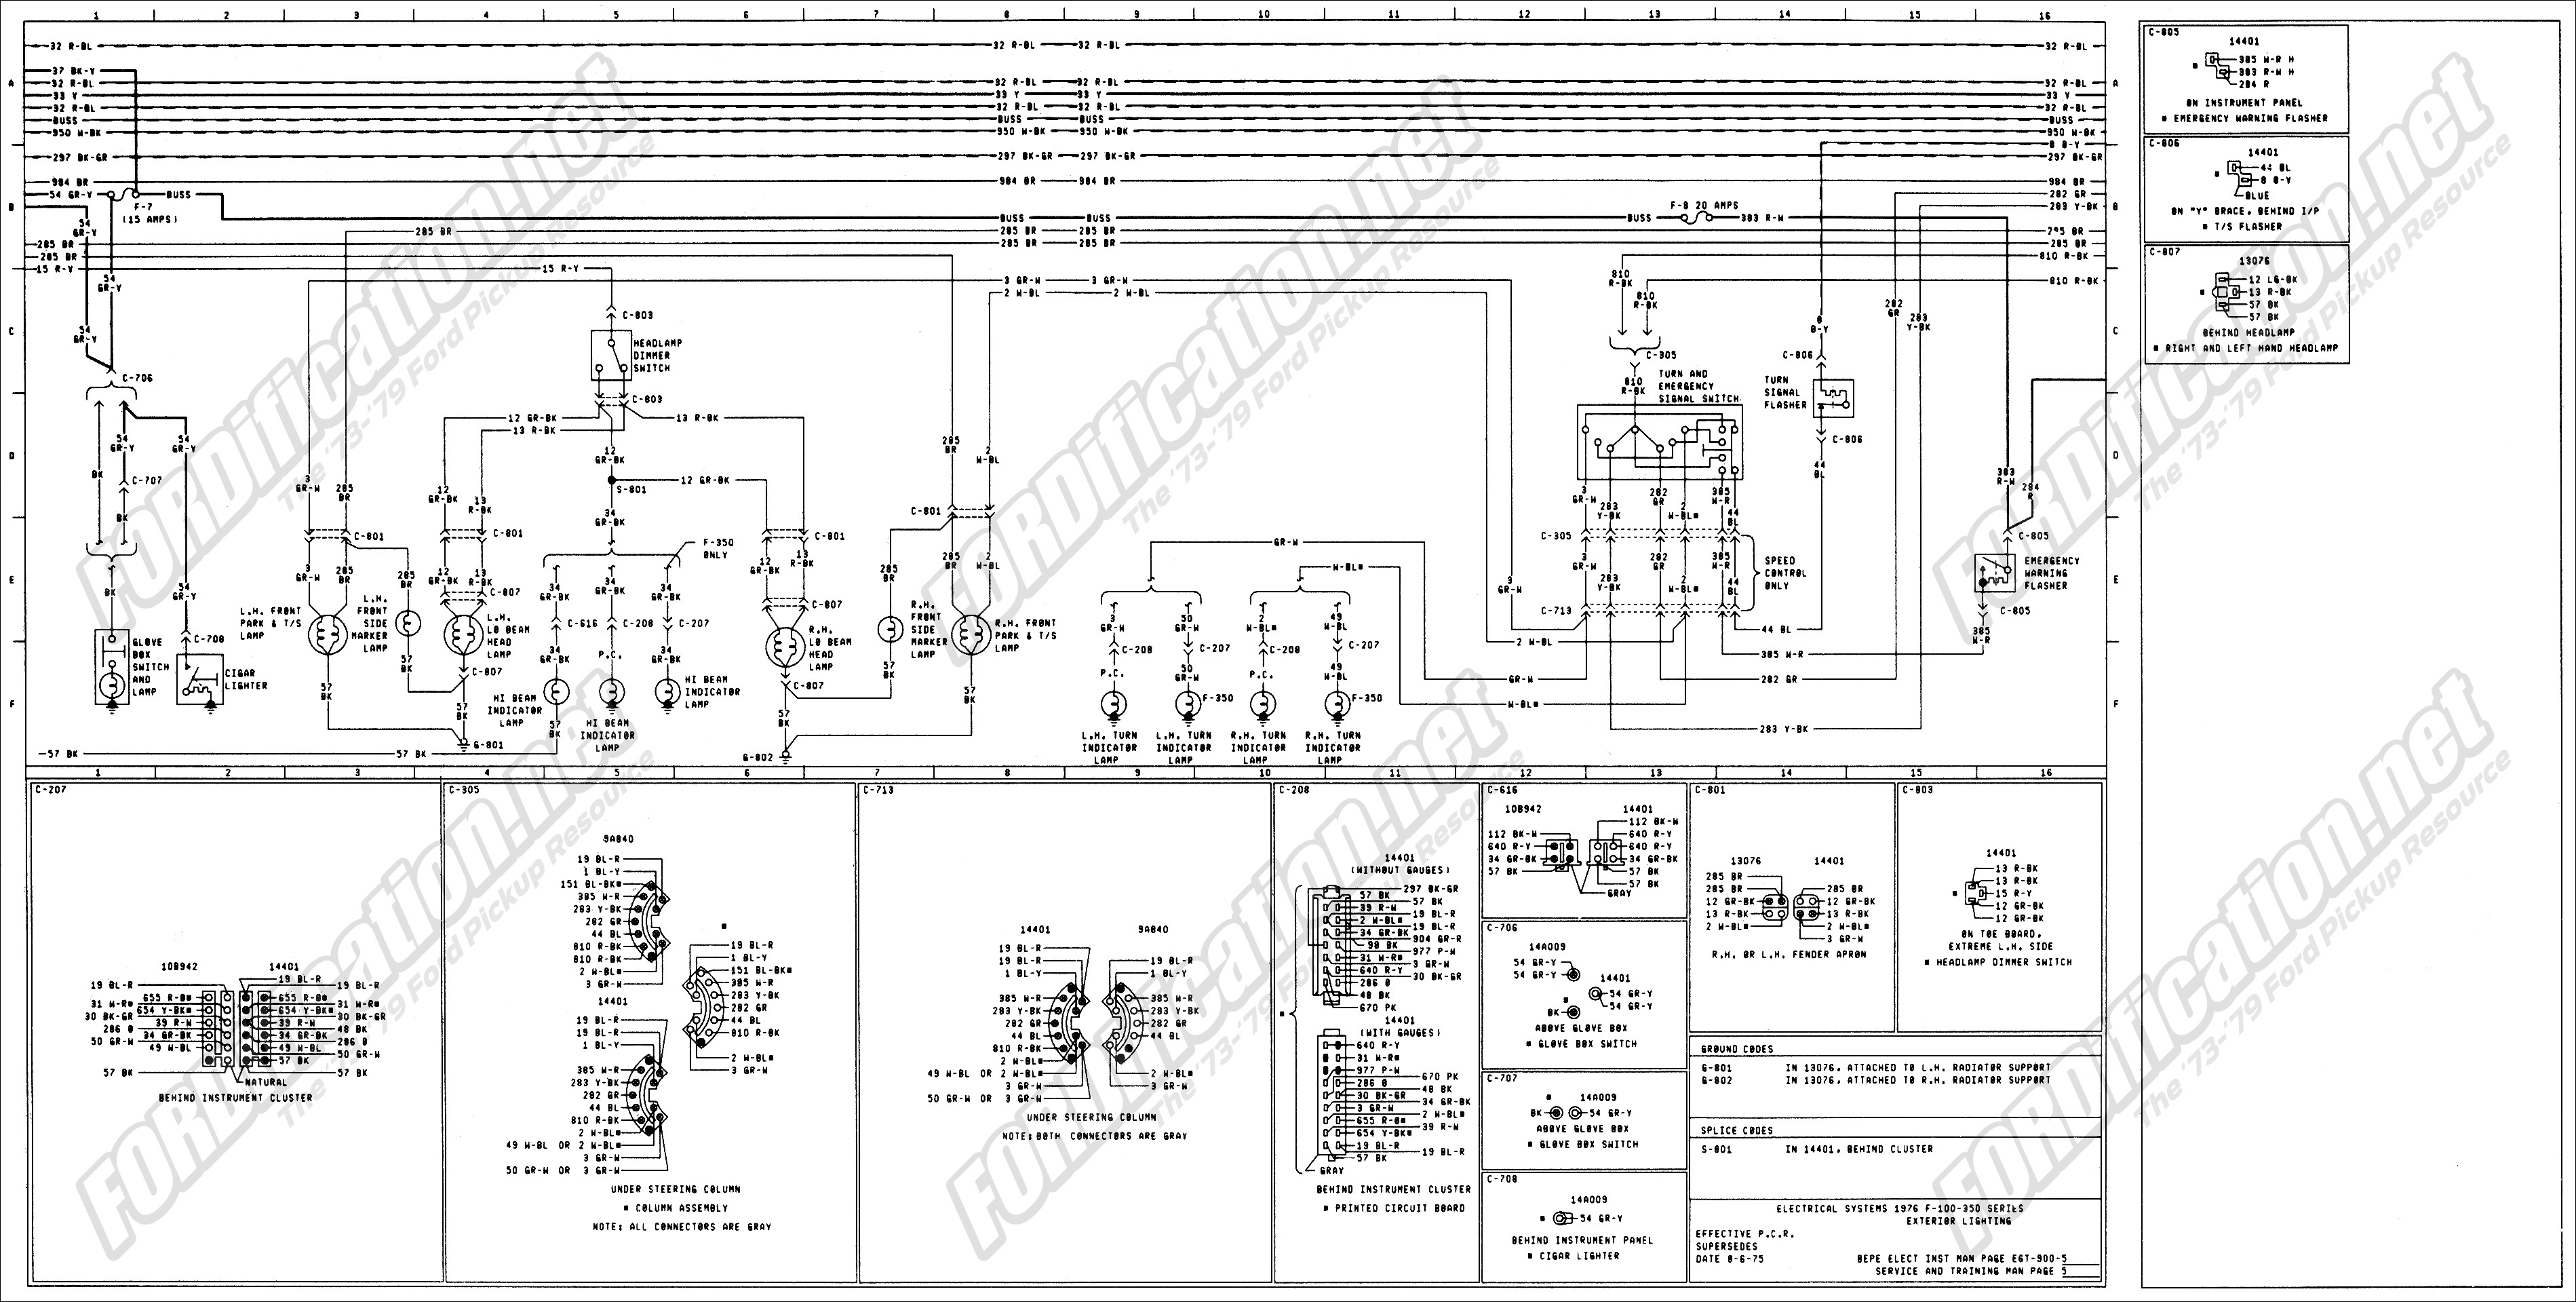 1981 ford f100 wiring harness diagram wiring diagram schematics